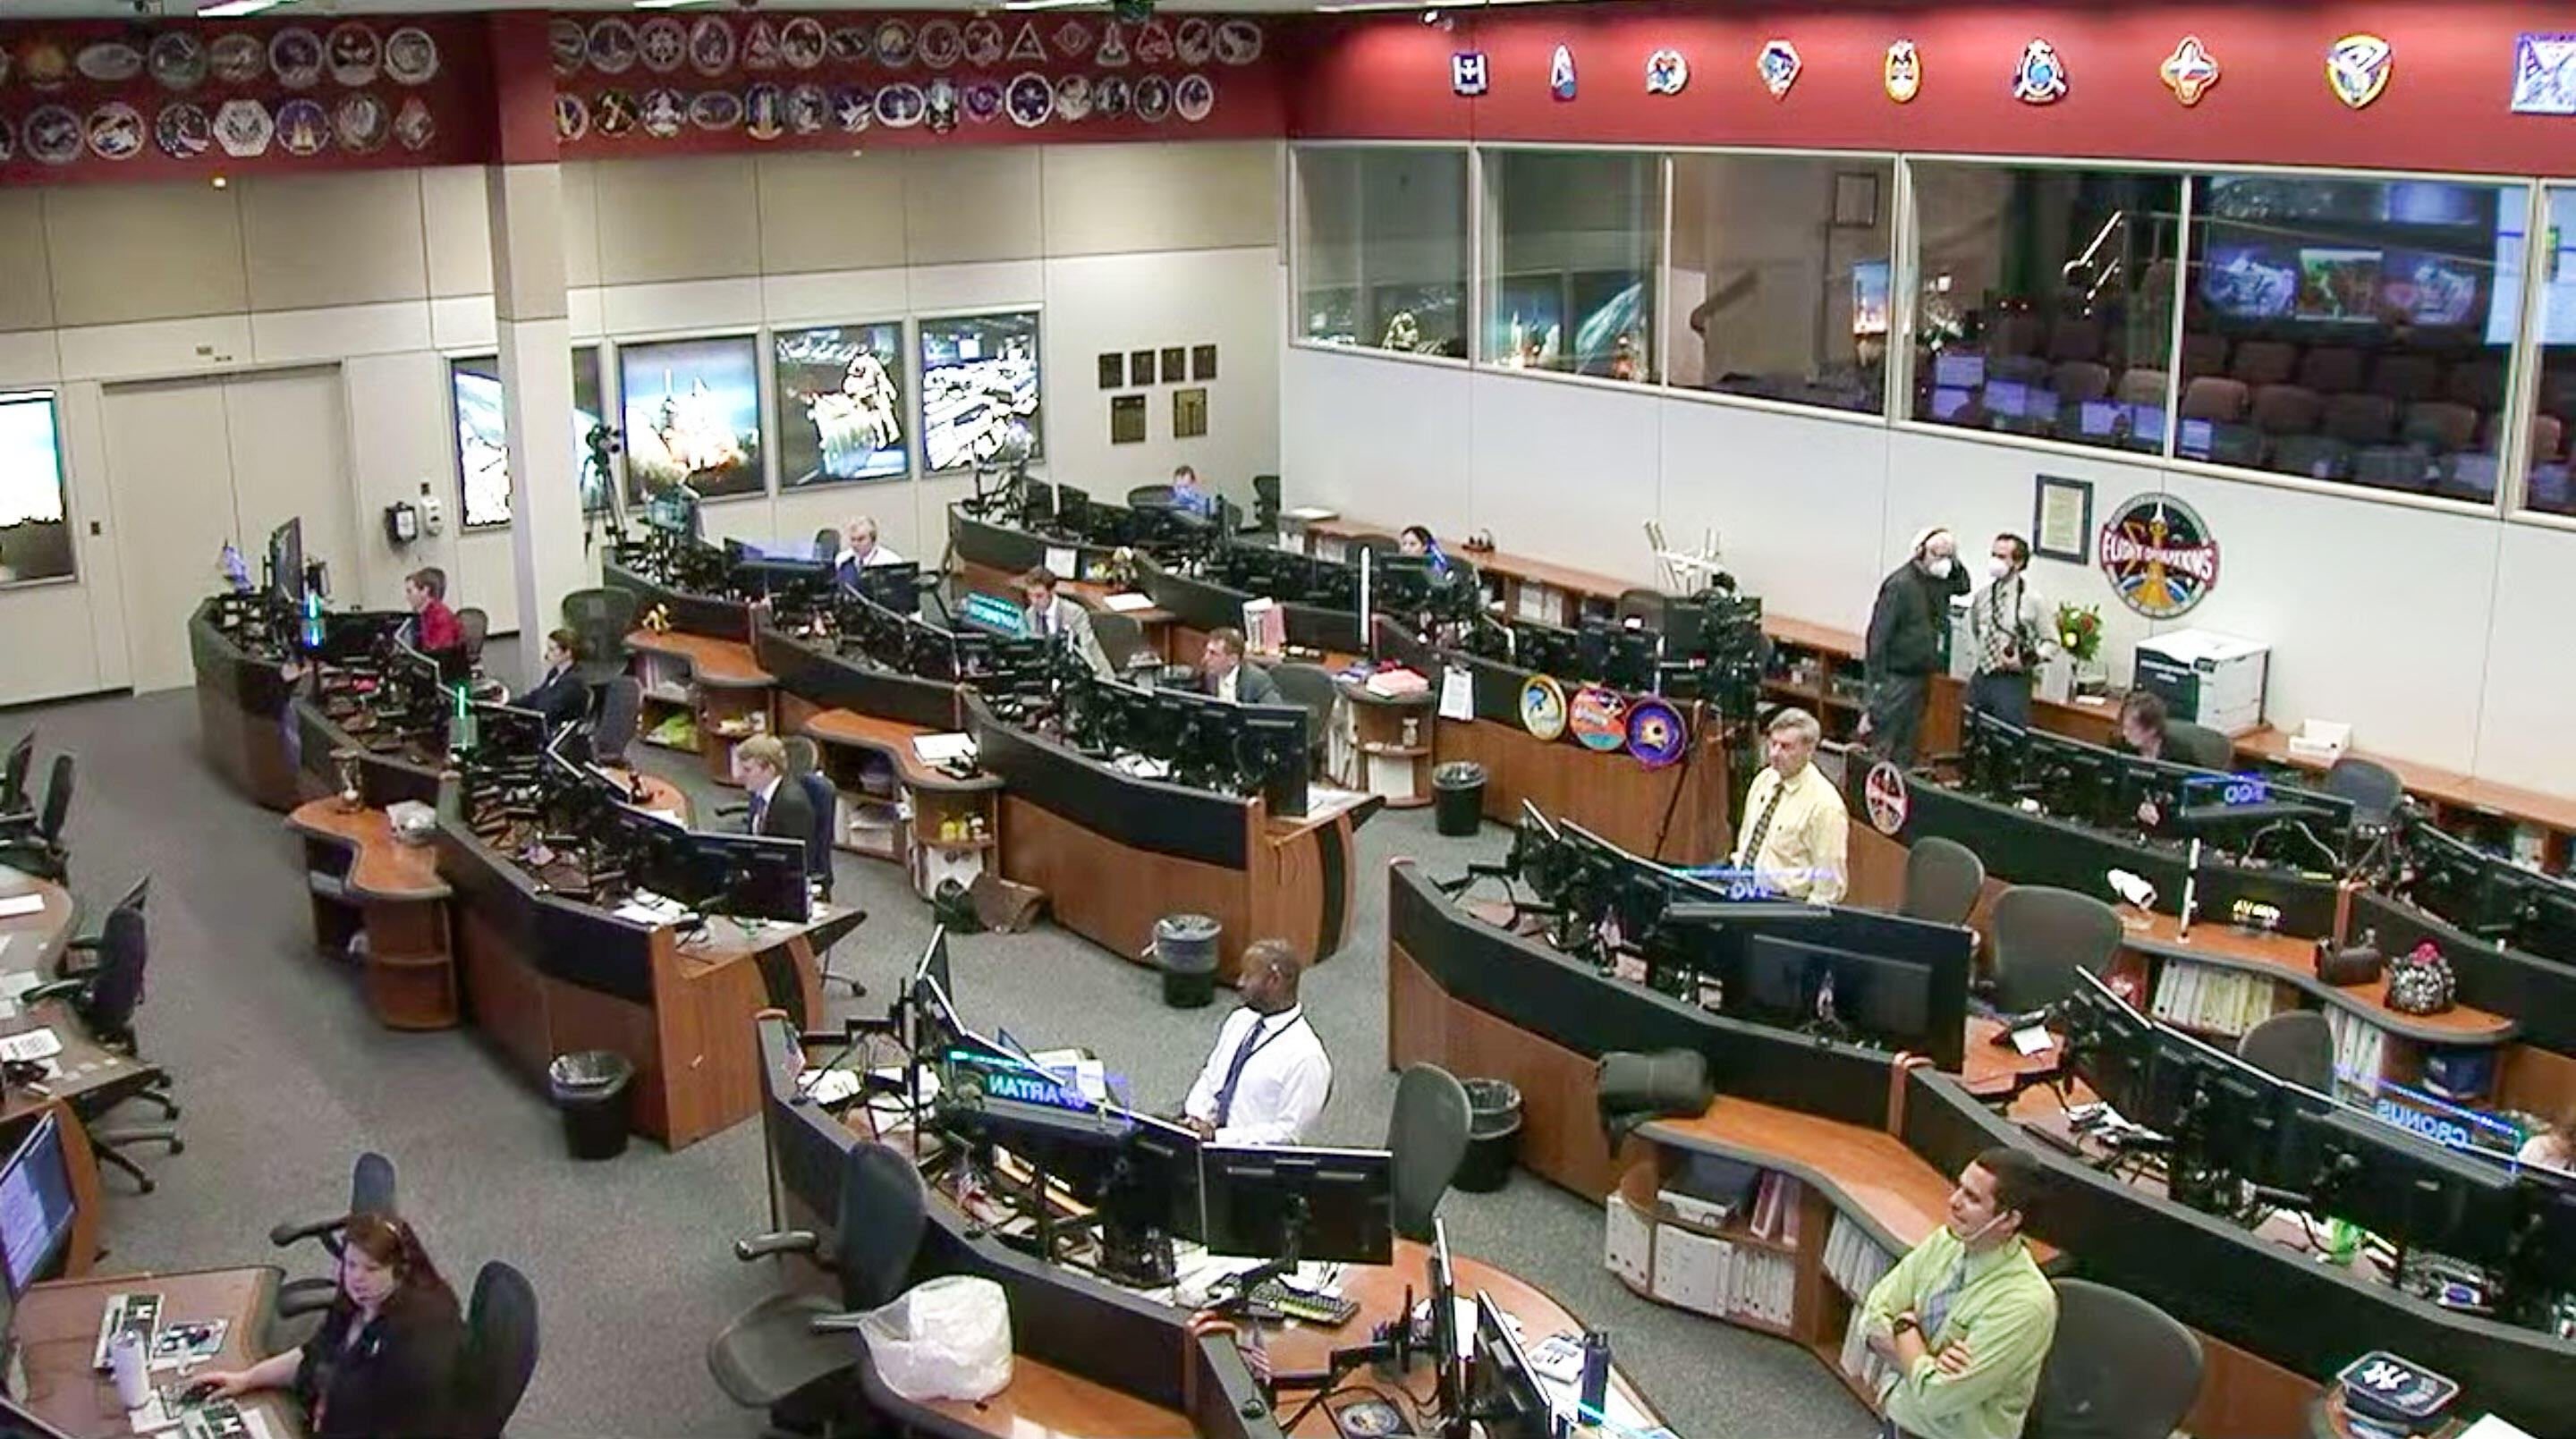 NASA's Mission Control for SpaceX launch